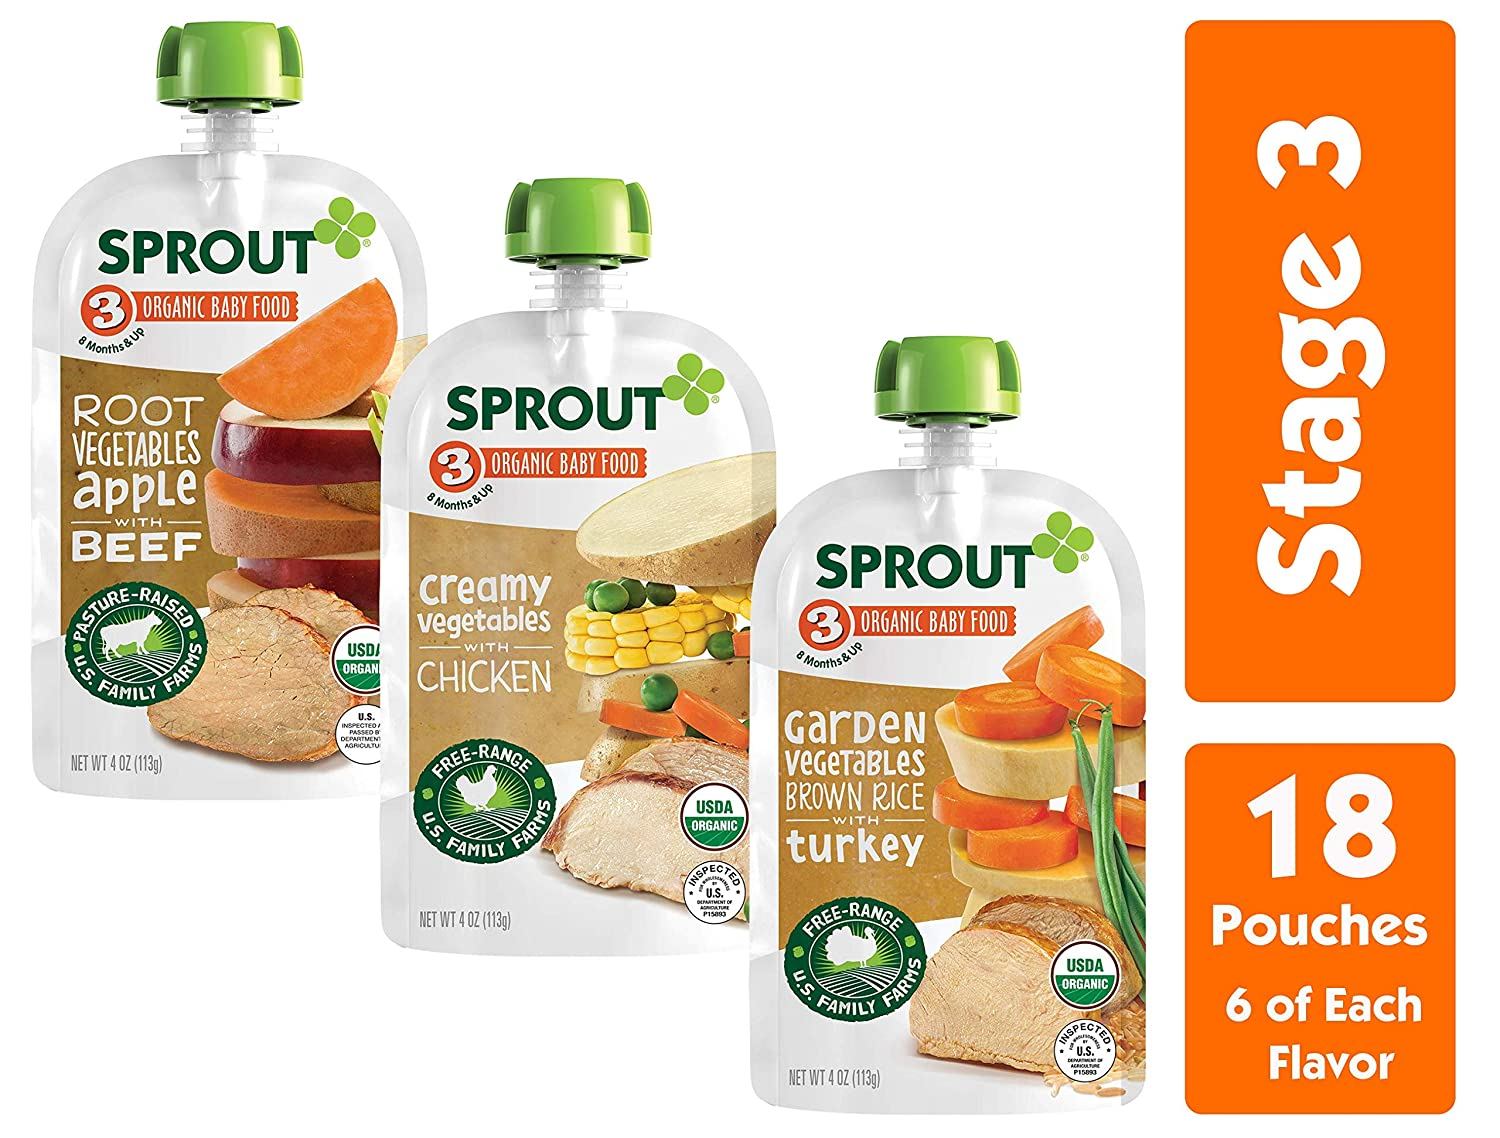 Sprout Organic Stage 3 Baby Food Pouches, Meat Variety, 4 Ounce (Pack of 18) 6 of Each: Root Veg Apple w/ Beef, Creamy Veg w/ Chicken & Garden Veg ...